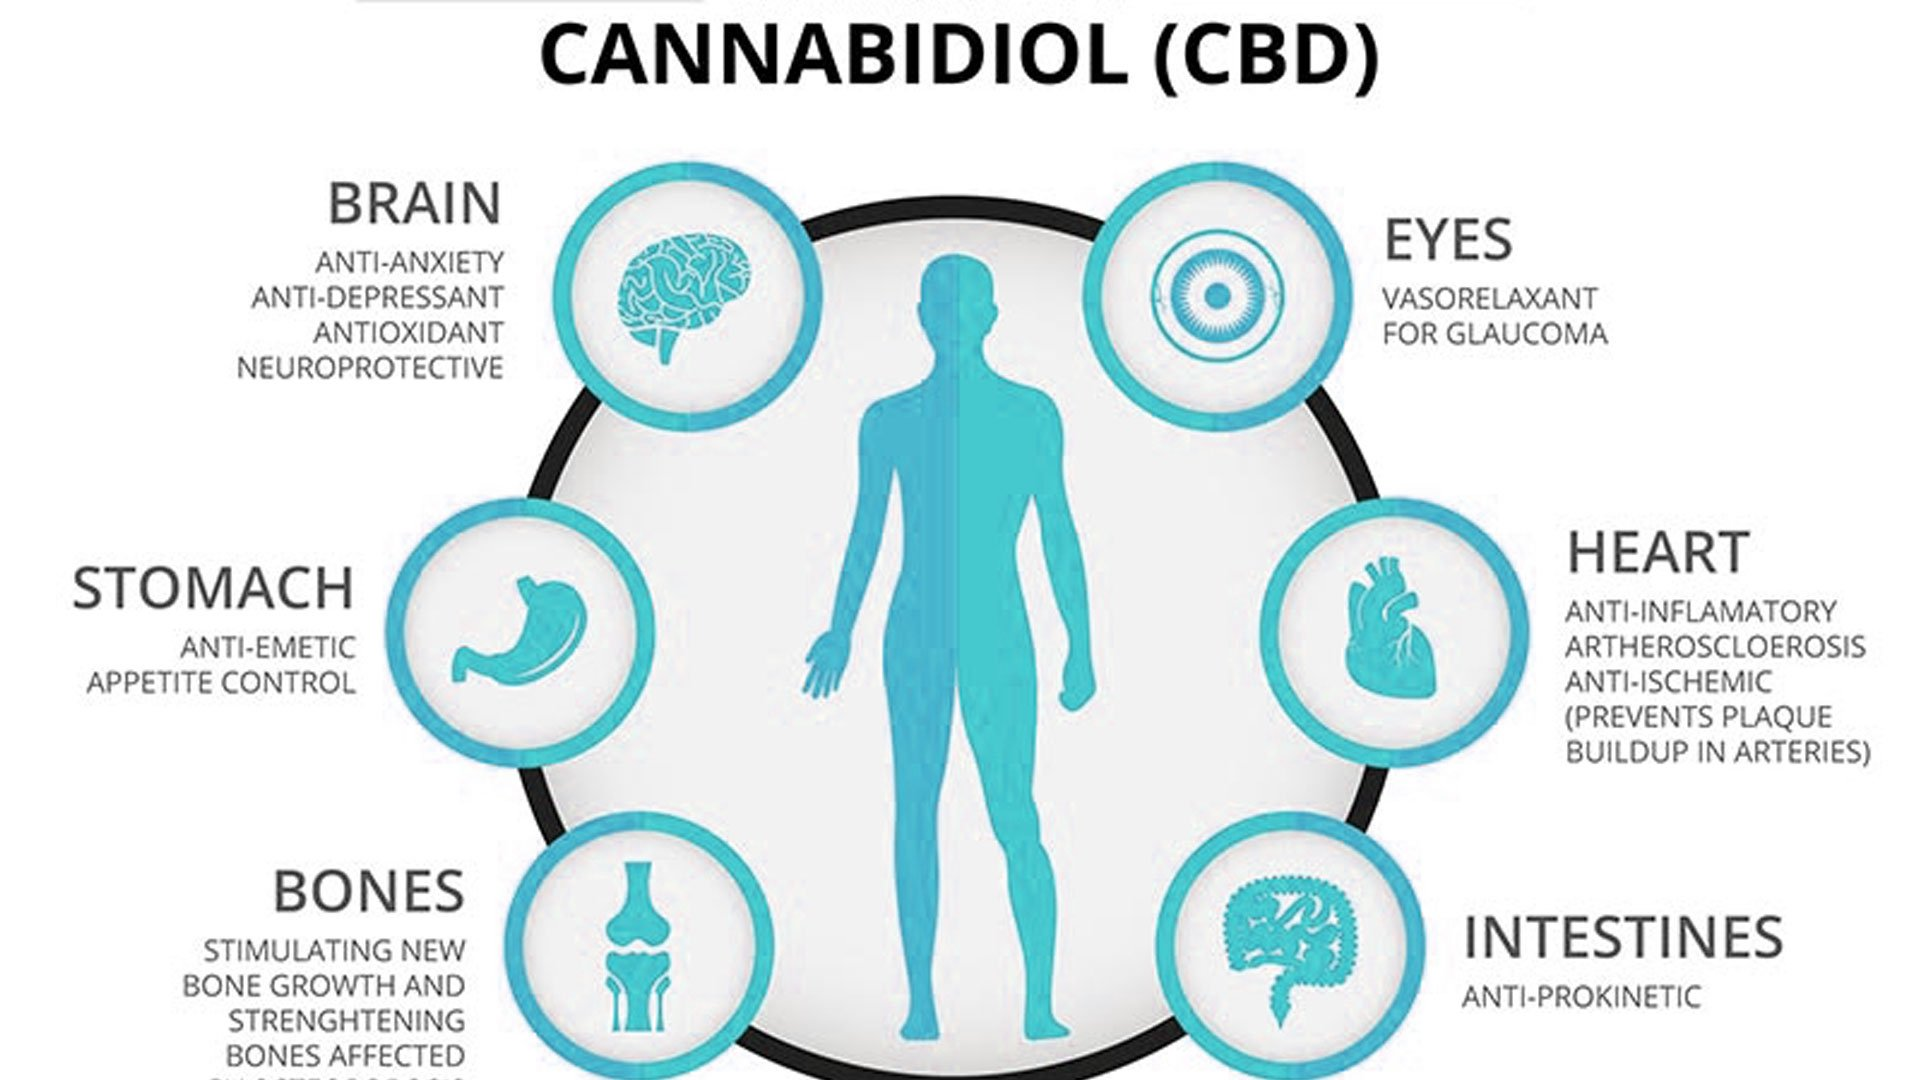 health-benefits-of-cannabidiol-_blog_aa639755-e23f-4f33-9cc2-601ab1dd3144_2000x.jpg